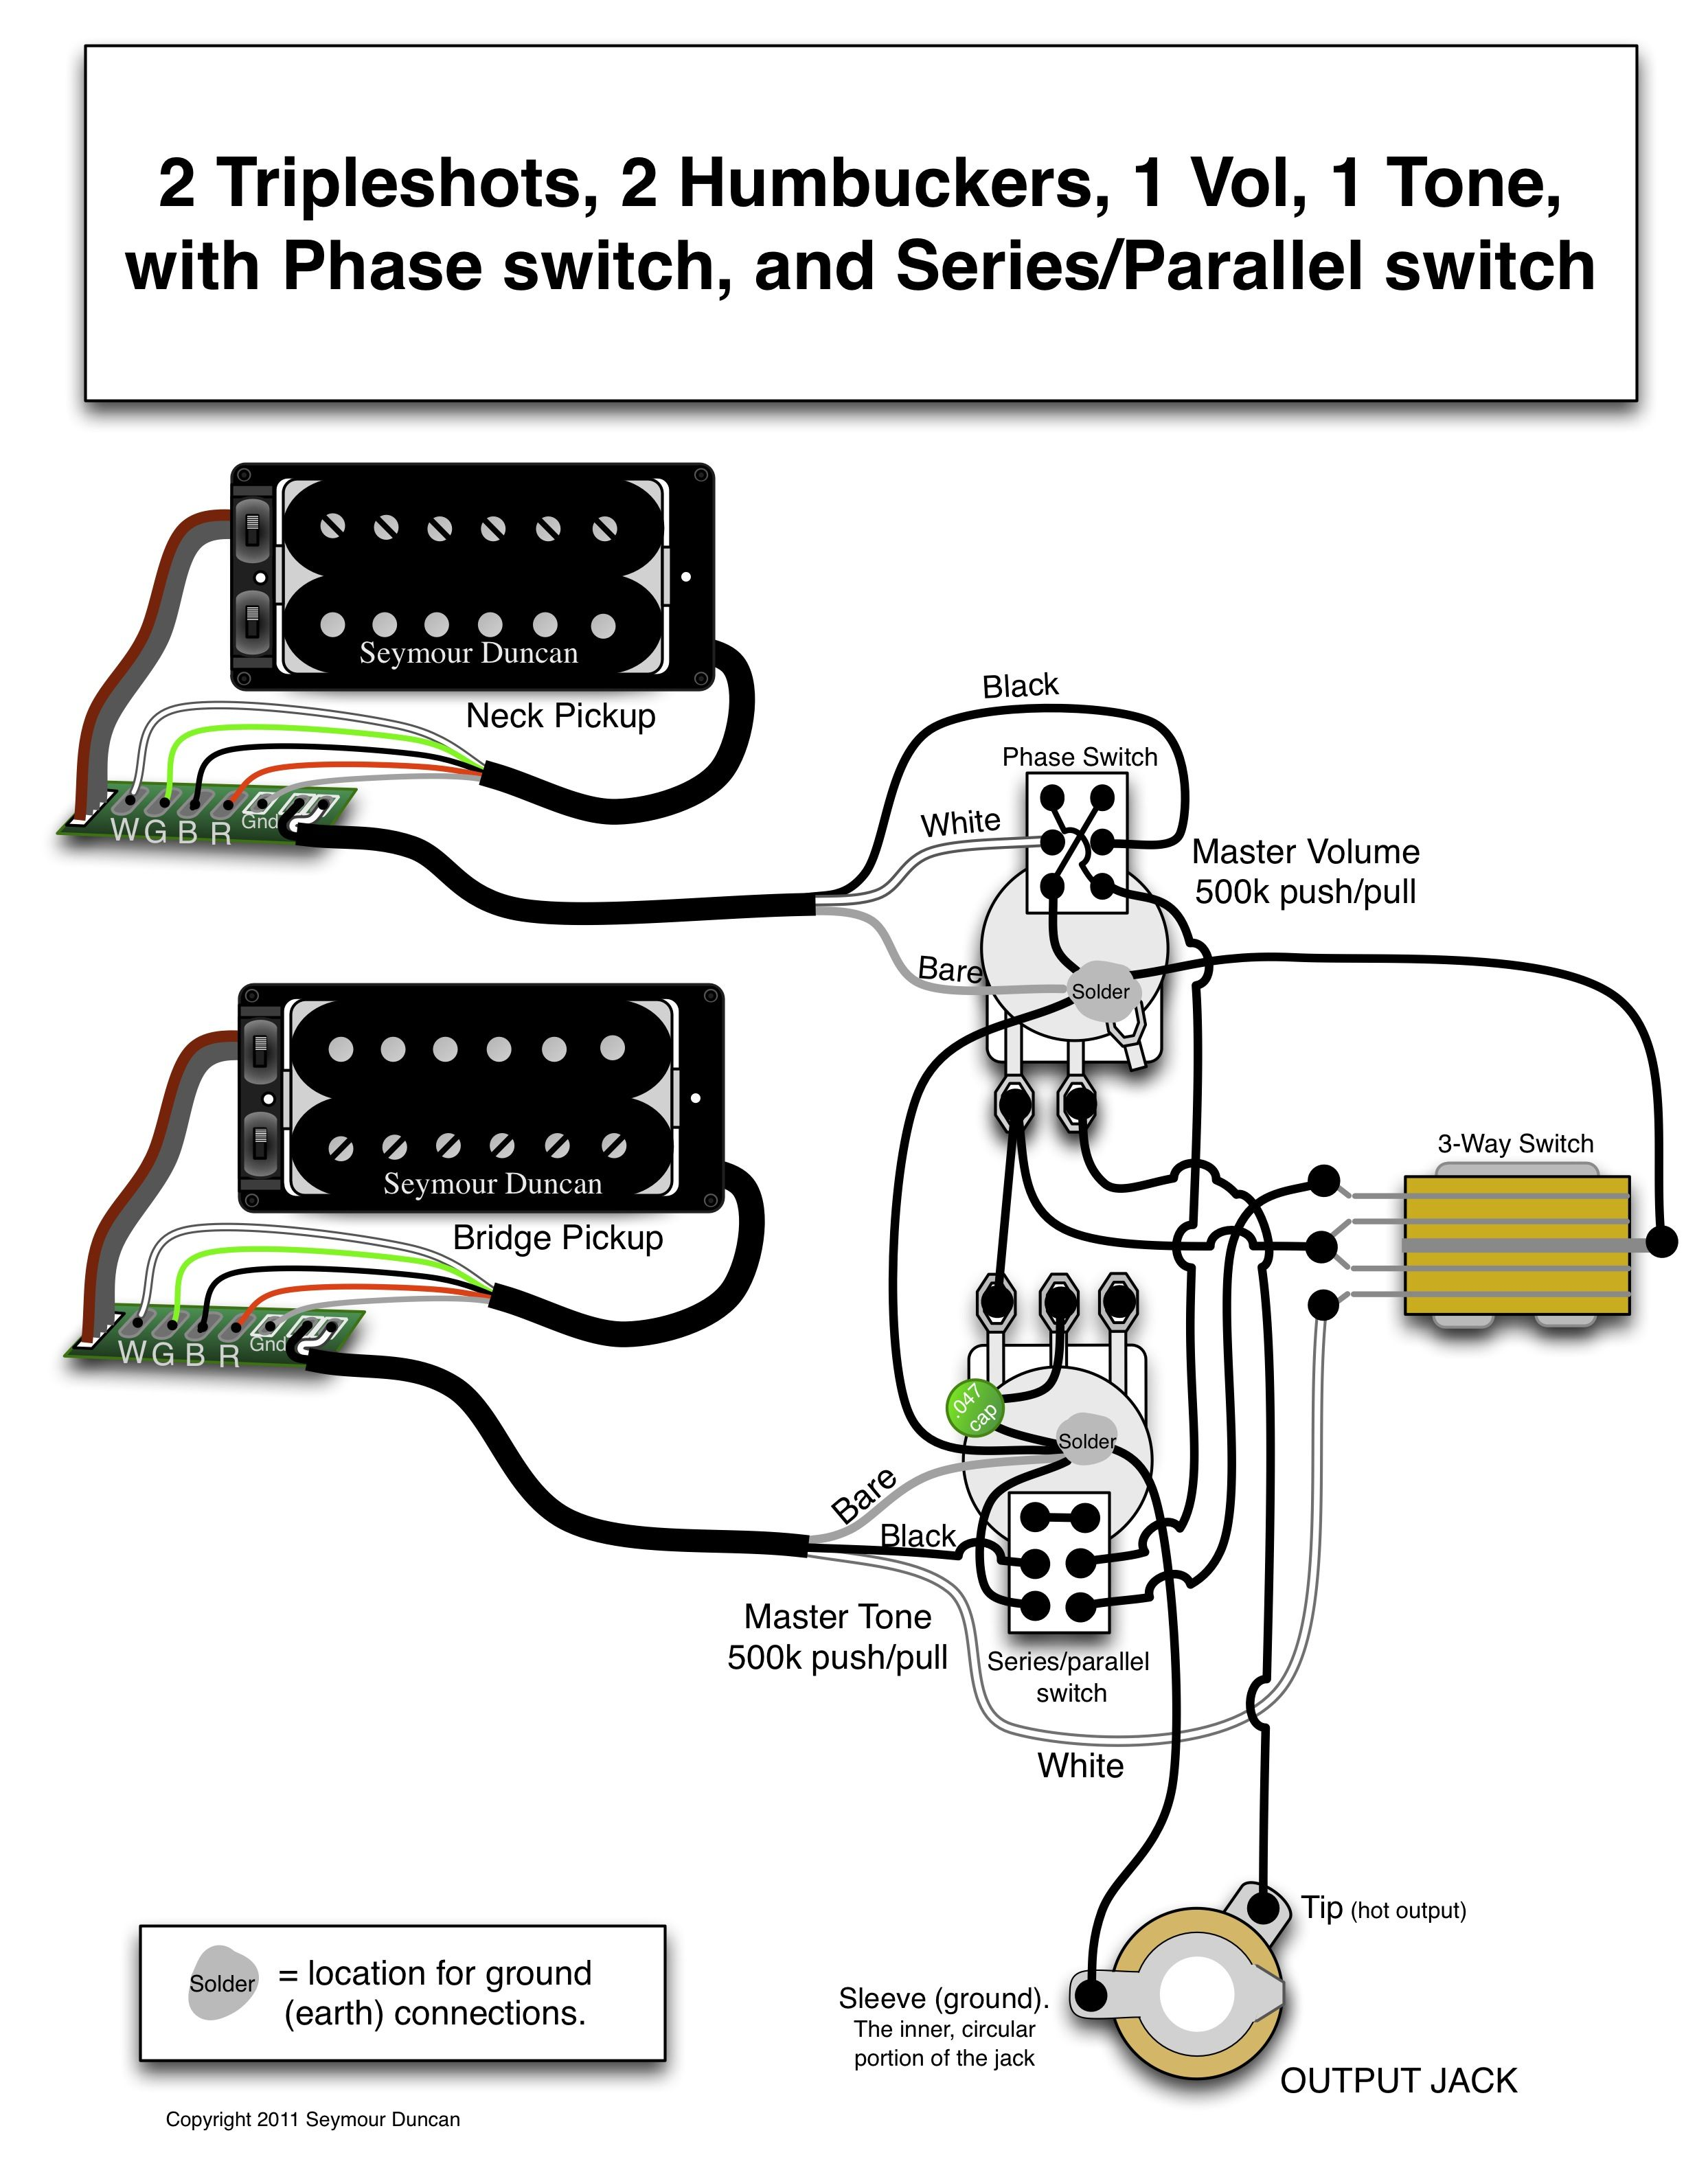 Seymour duncan wiring diagram 2 triple shots 2 humbuckers 1 vol seymour duncan wiring diagram 2 triple shots 2 humbuckers 1 vol with phase switch 1 tone with seriesparallel switch cheapraybanclubmaster Images